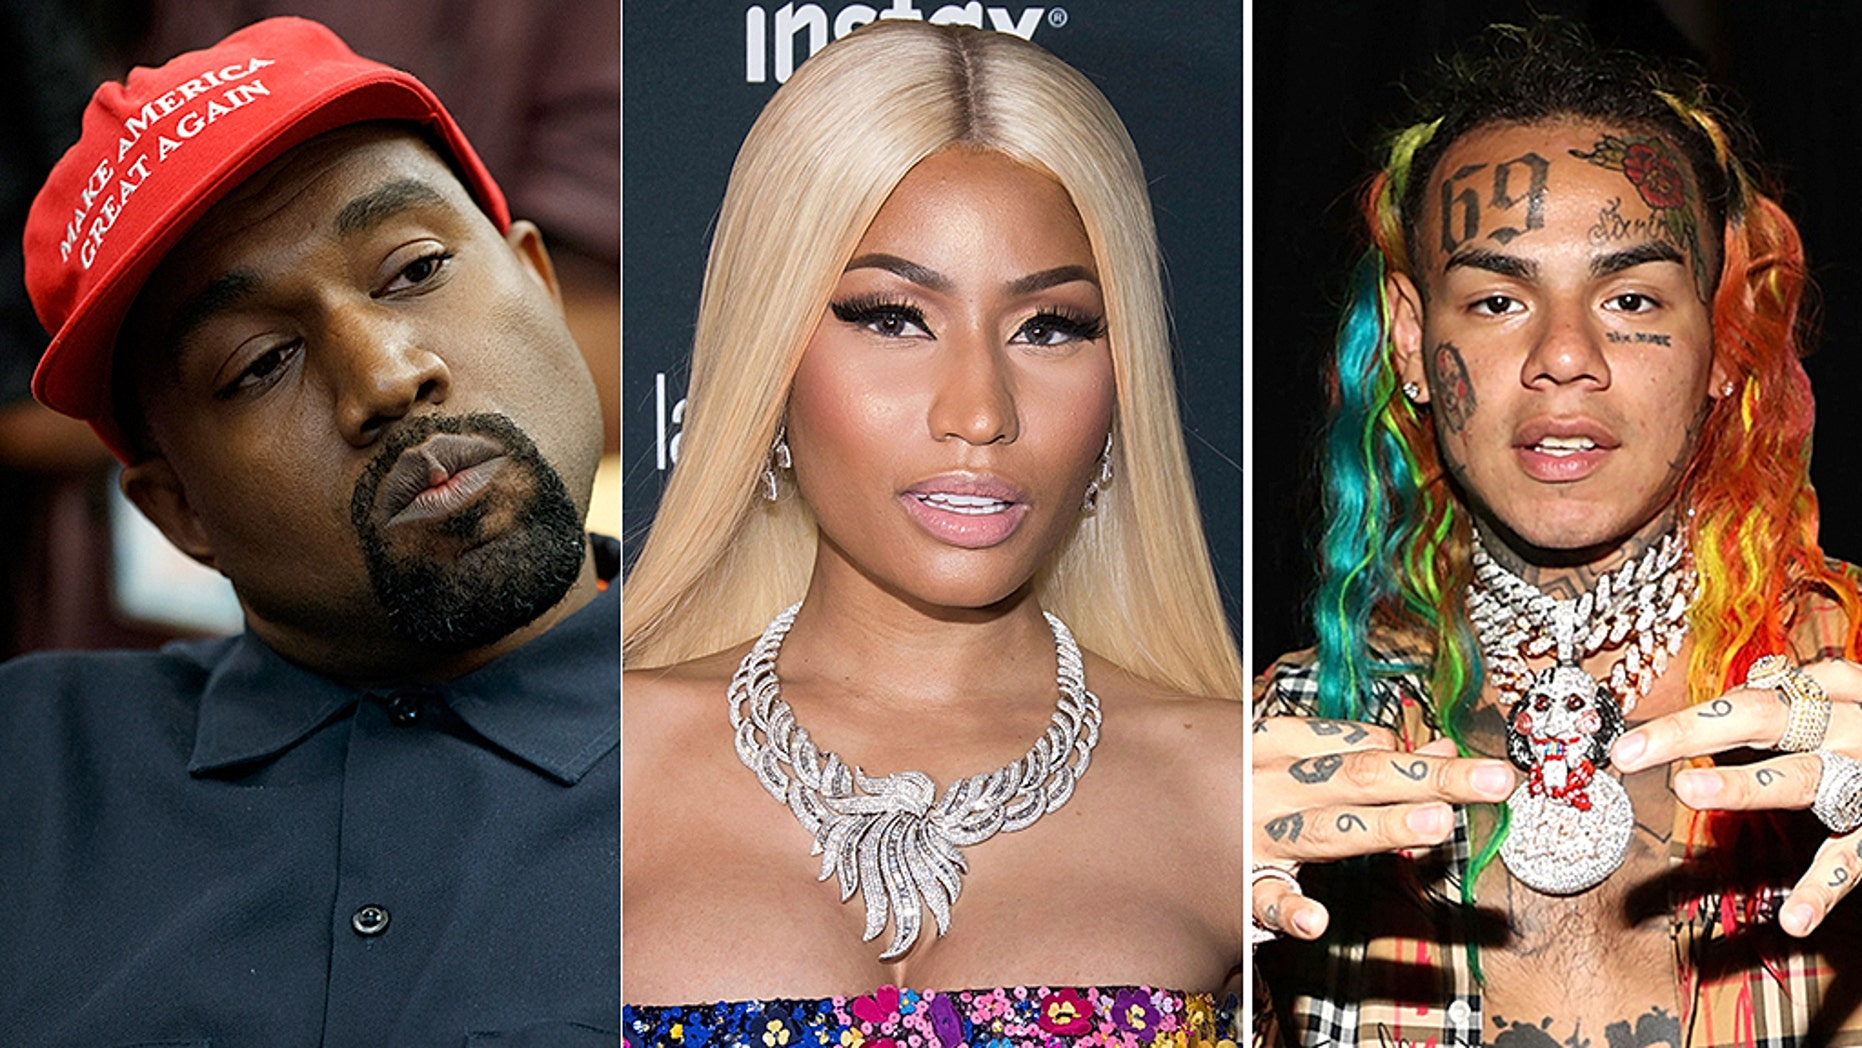 Shots Fired On Tekashi69, Nicki Minaj, And Kanye West Music Video Set